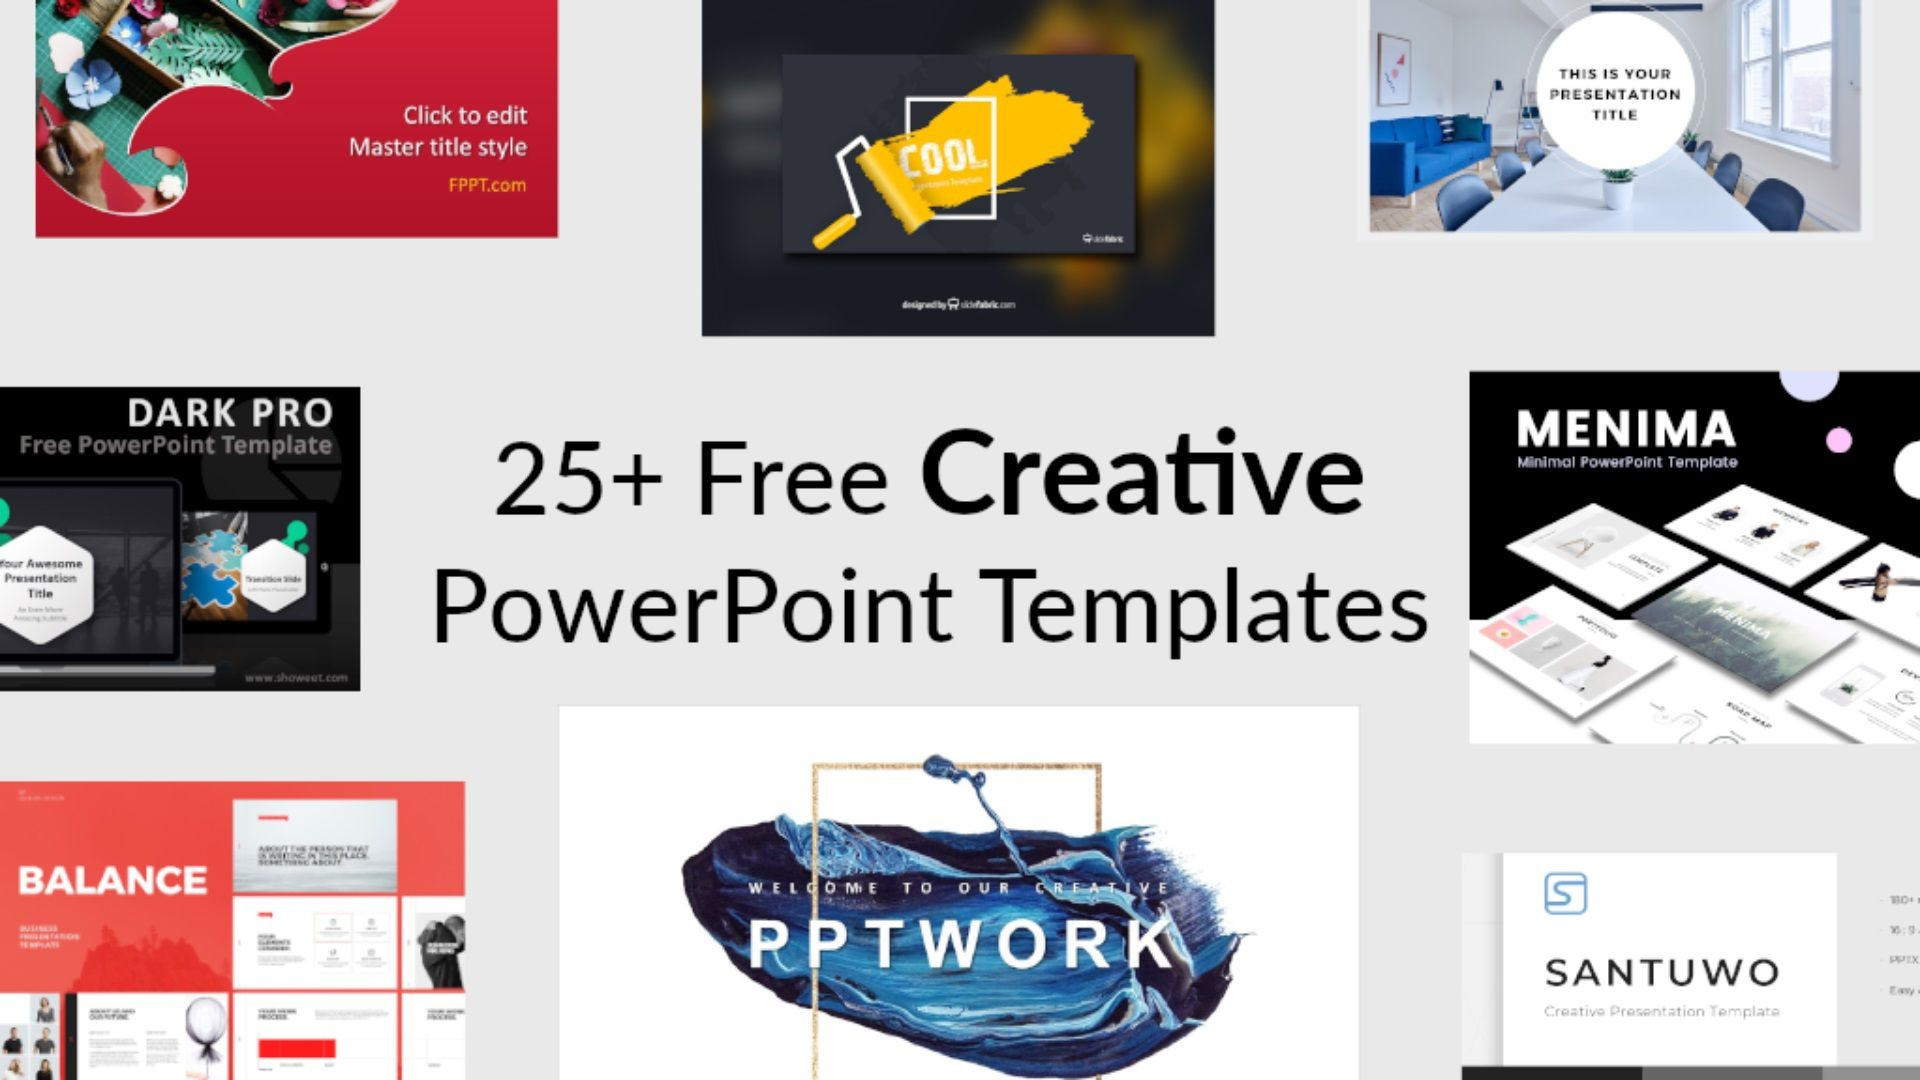 000 Stirring Free Powerpoint Template Design Highest Clarity  For Student Food Busines1920